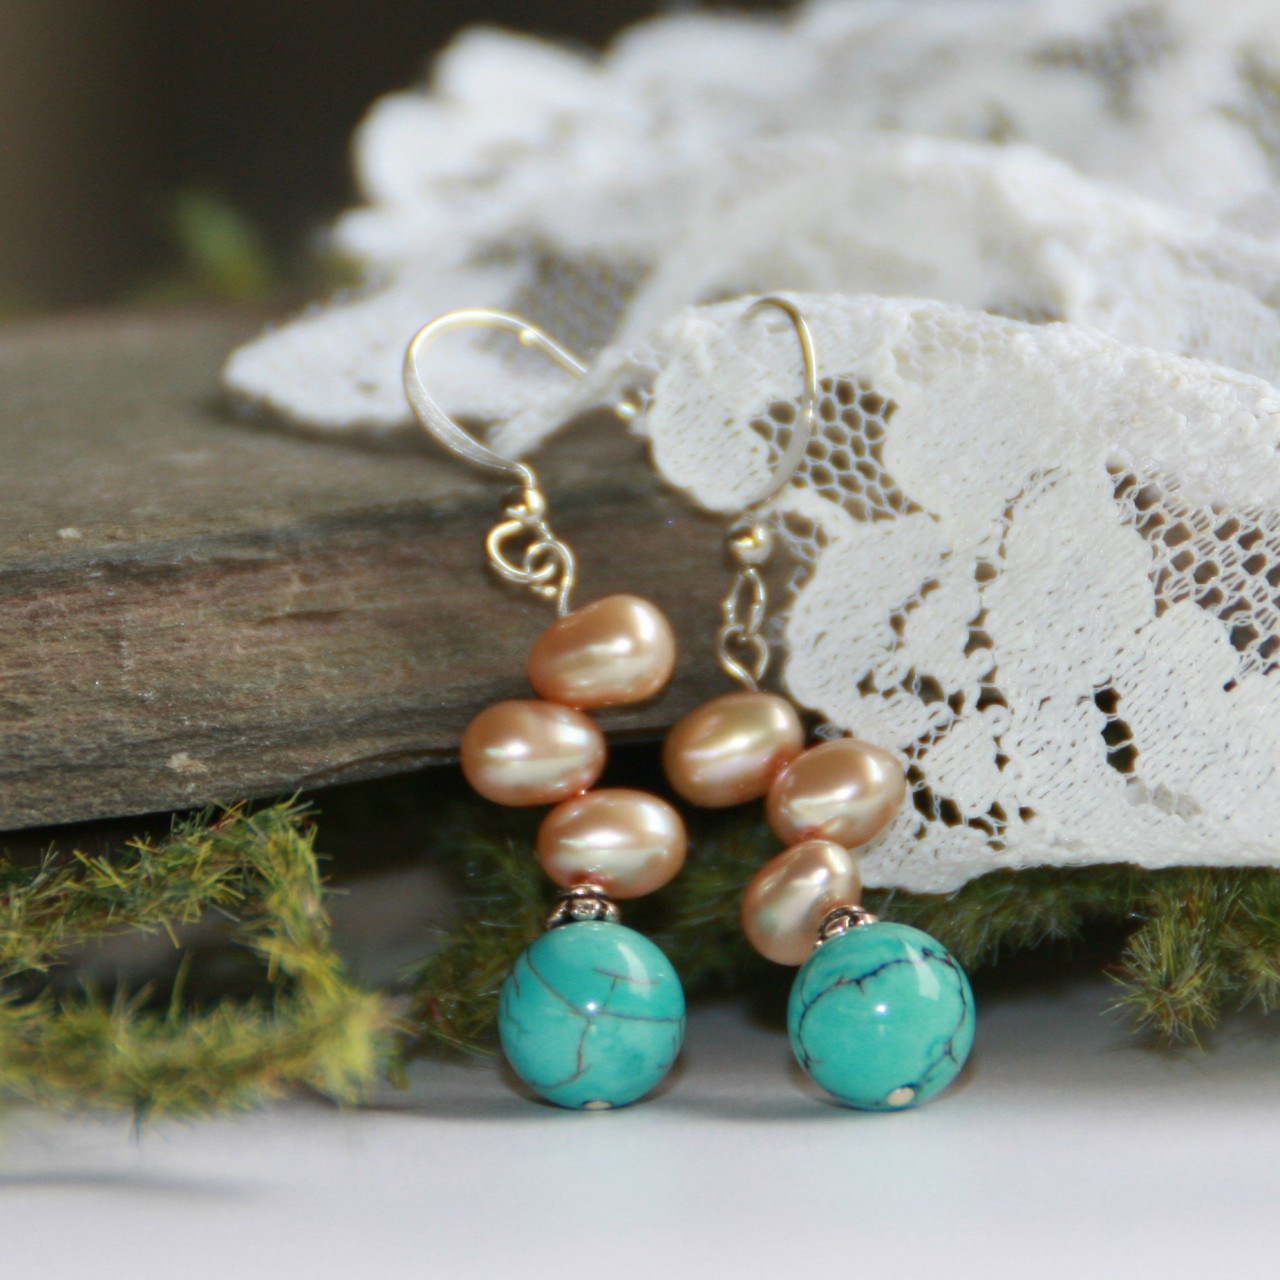 IS-96 Freshwater Pearls and Turquoise Earrings